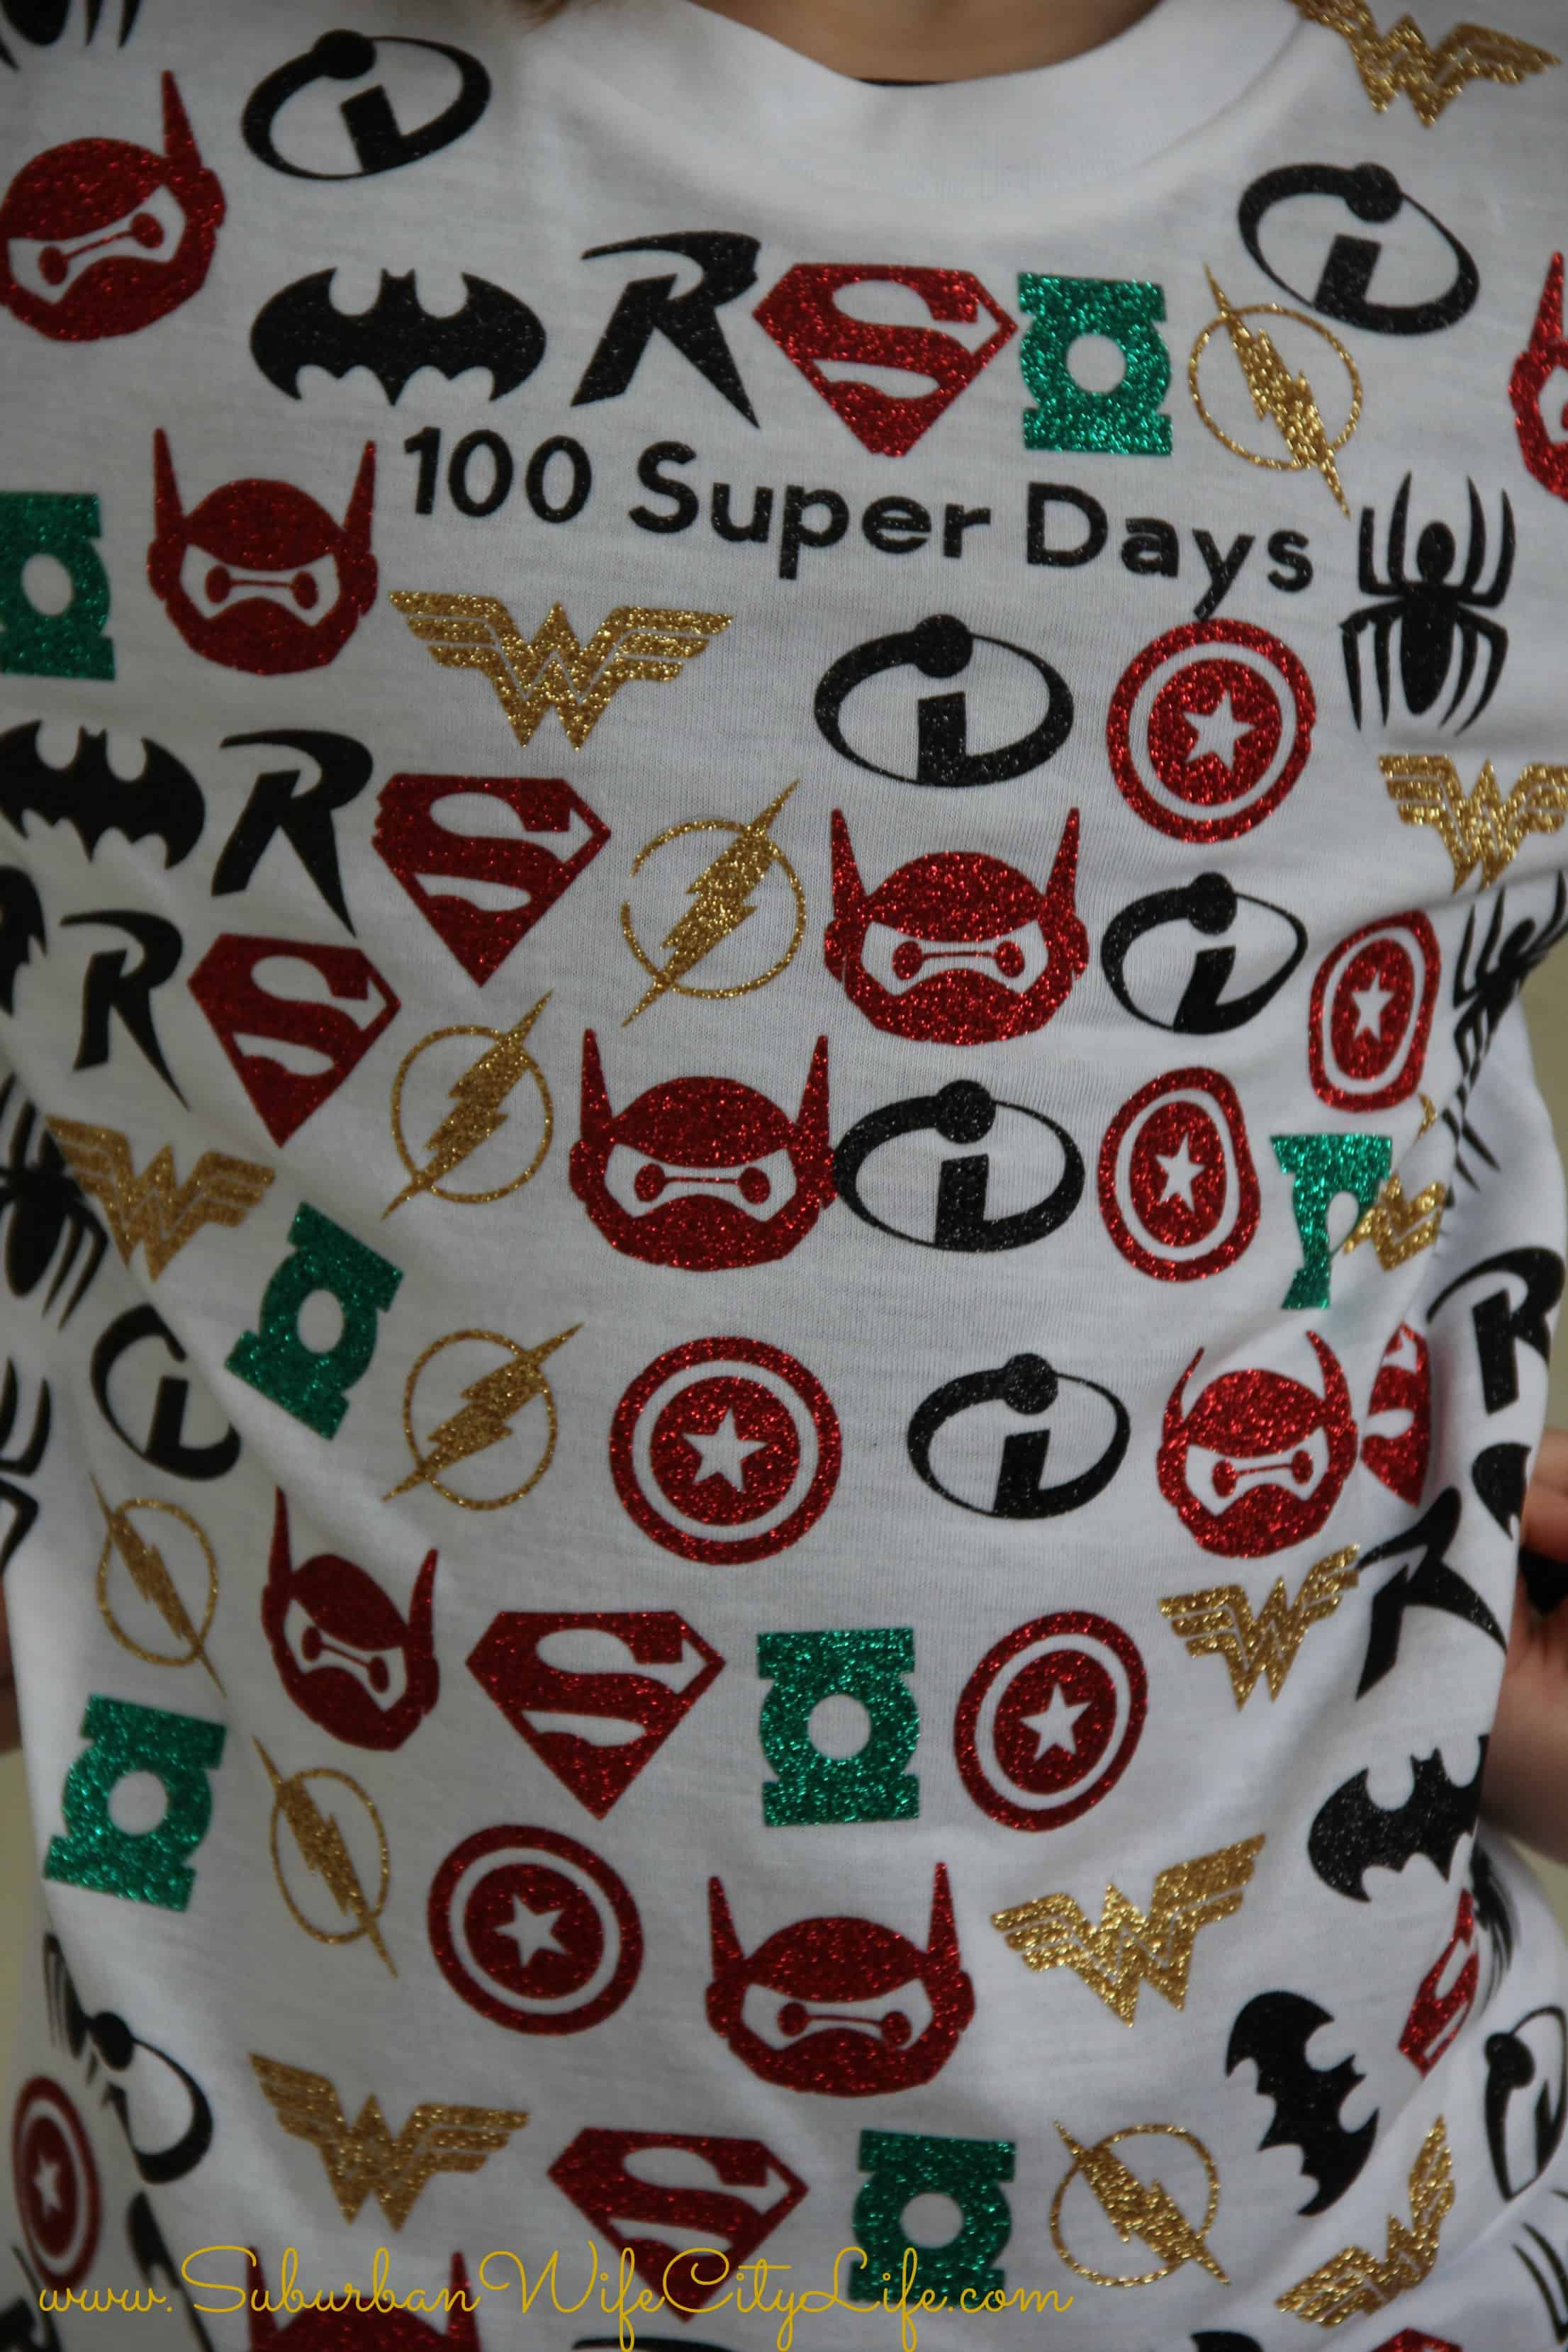 100 Super Days Shirt